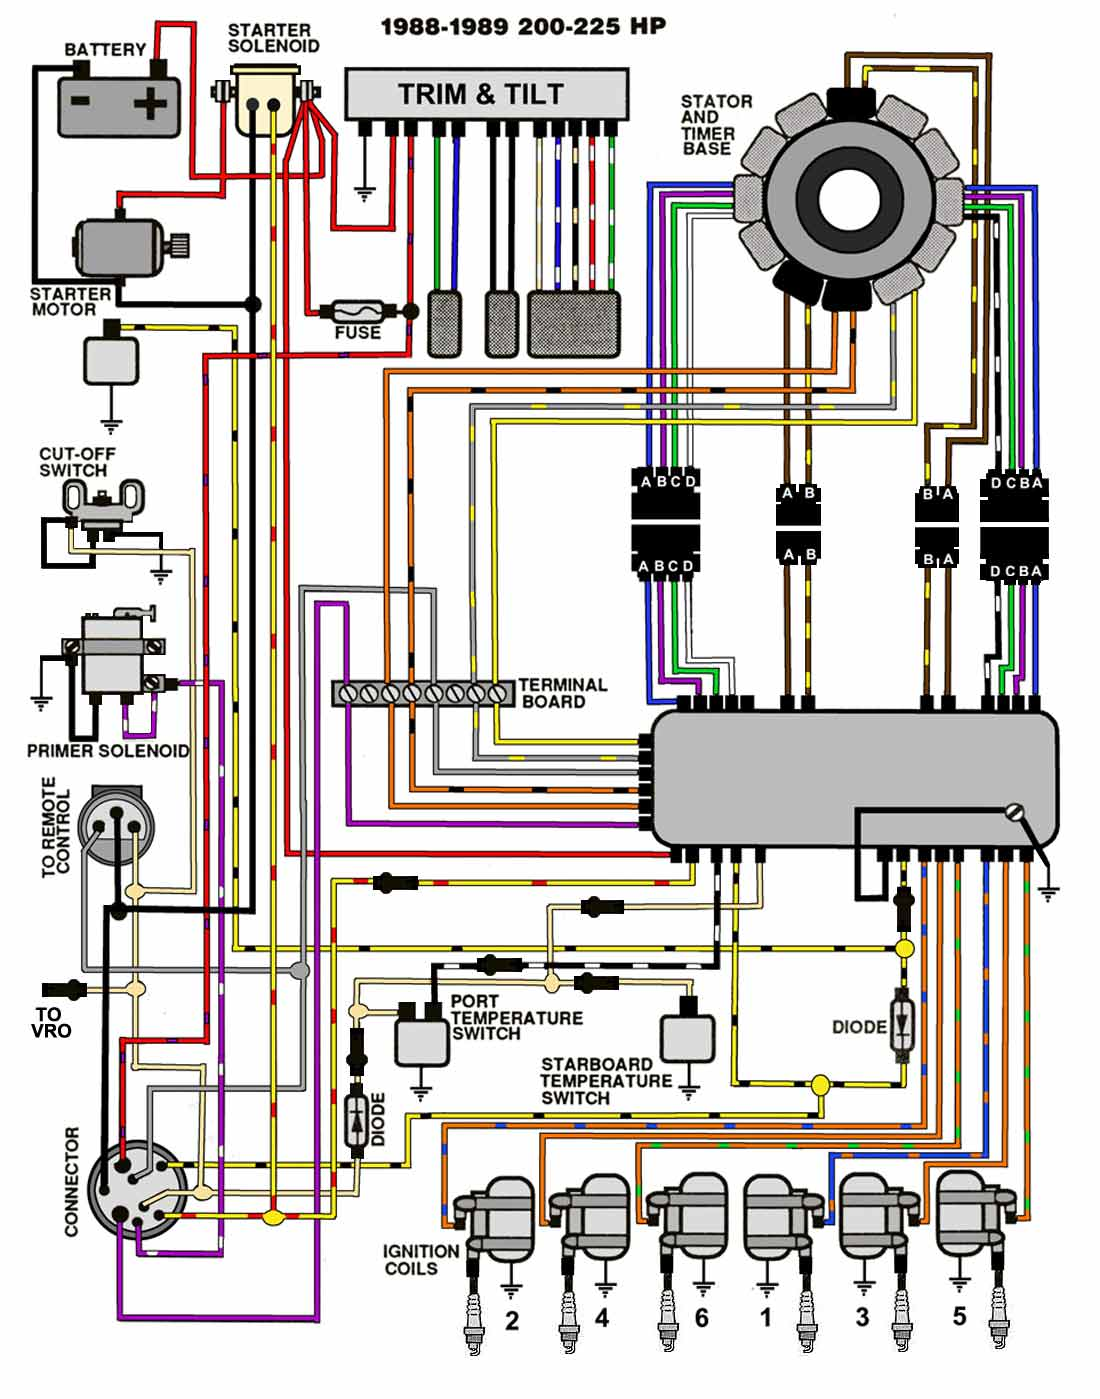 Wiring diagram johnson outboard motors mercury get free